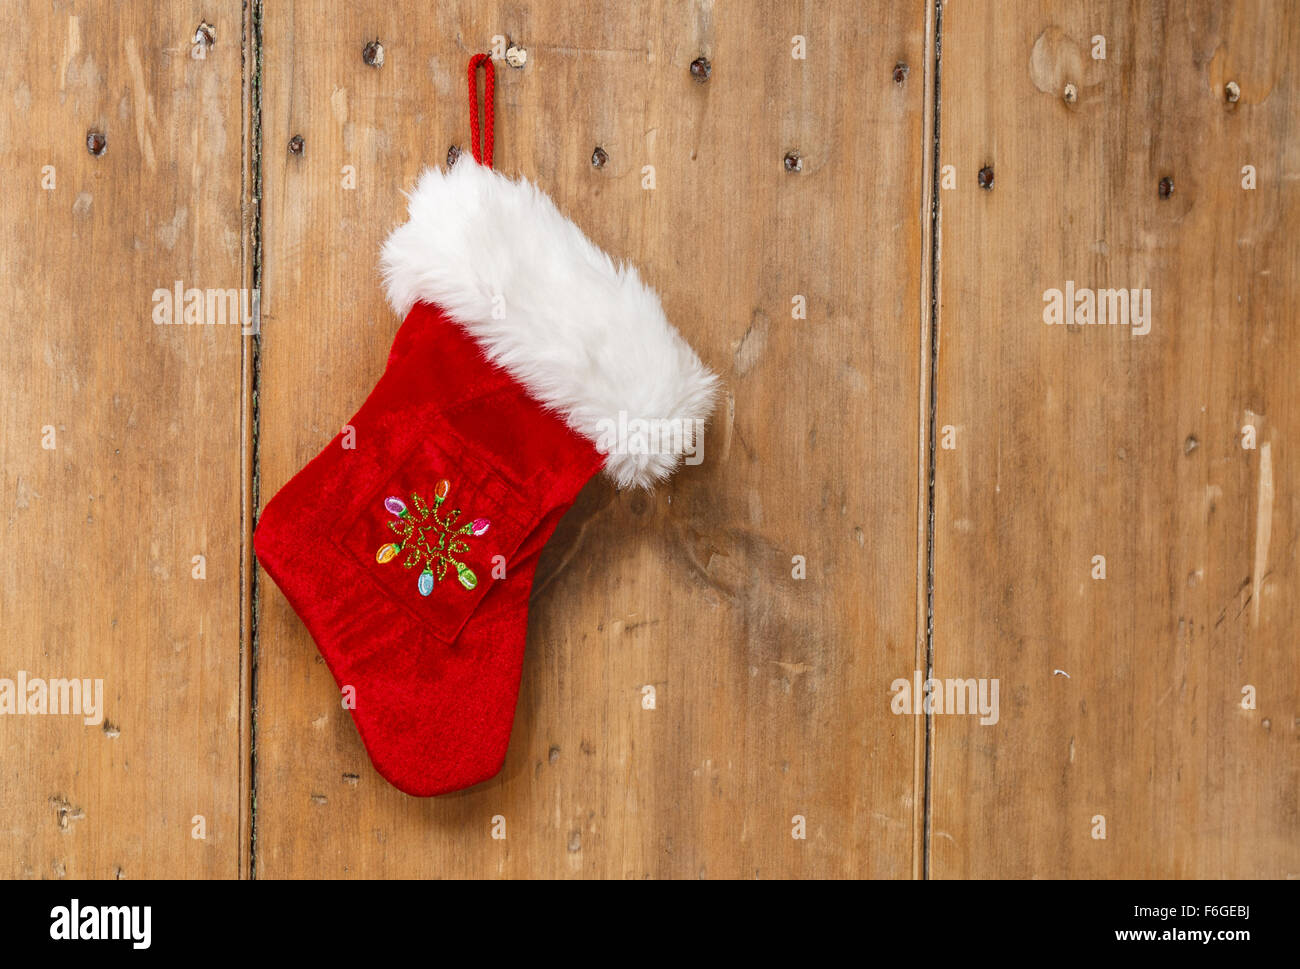 Christmas stocking hanging on an old pine wooden door - Stock Image